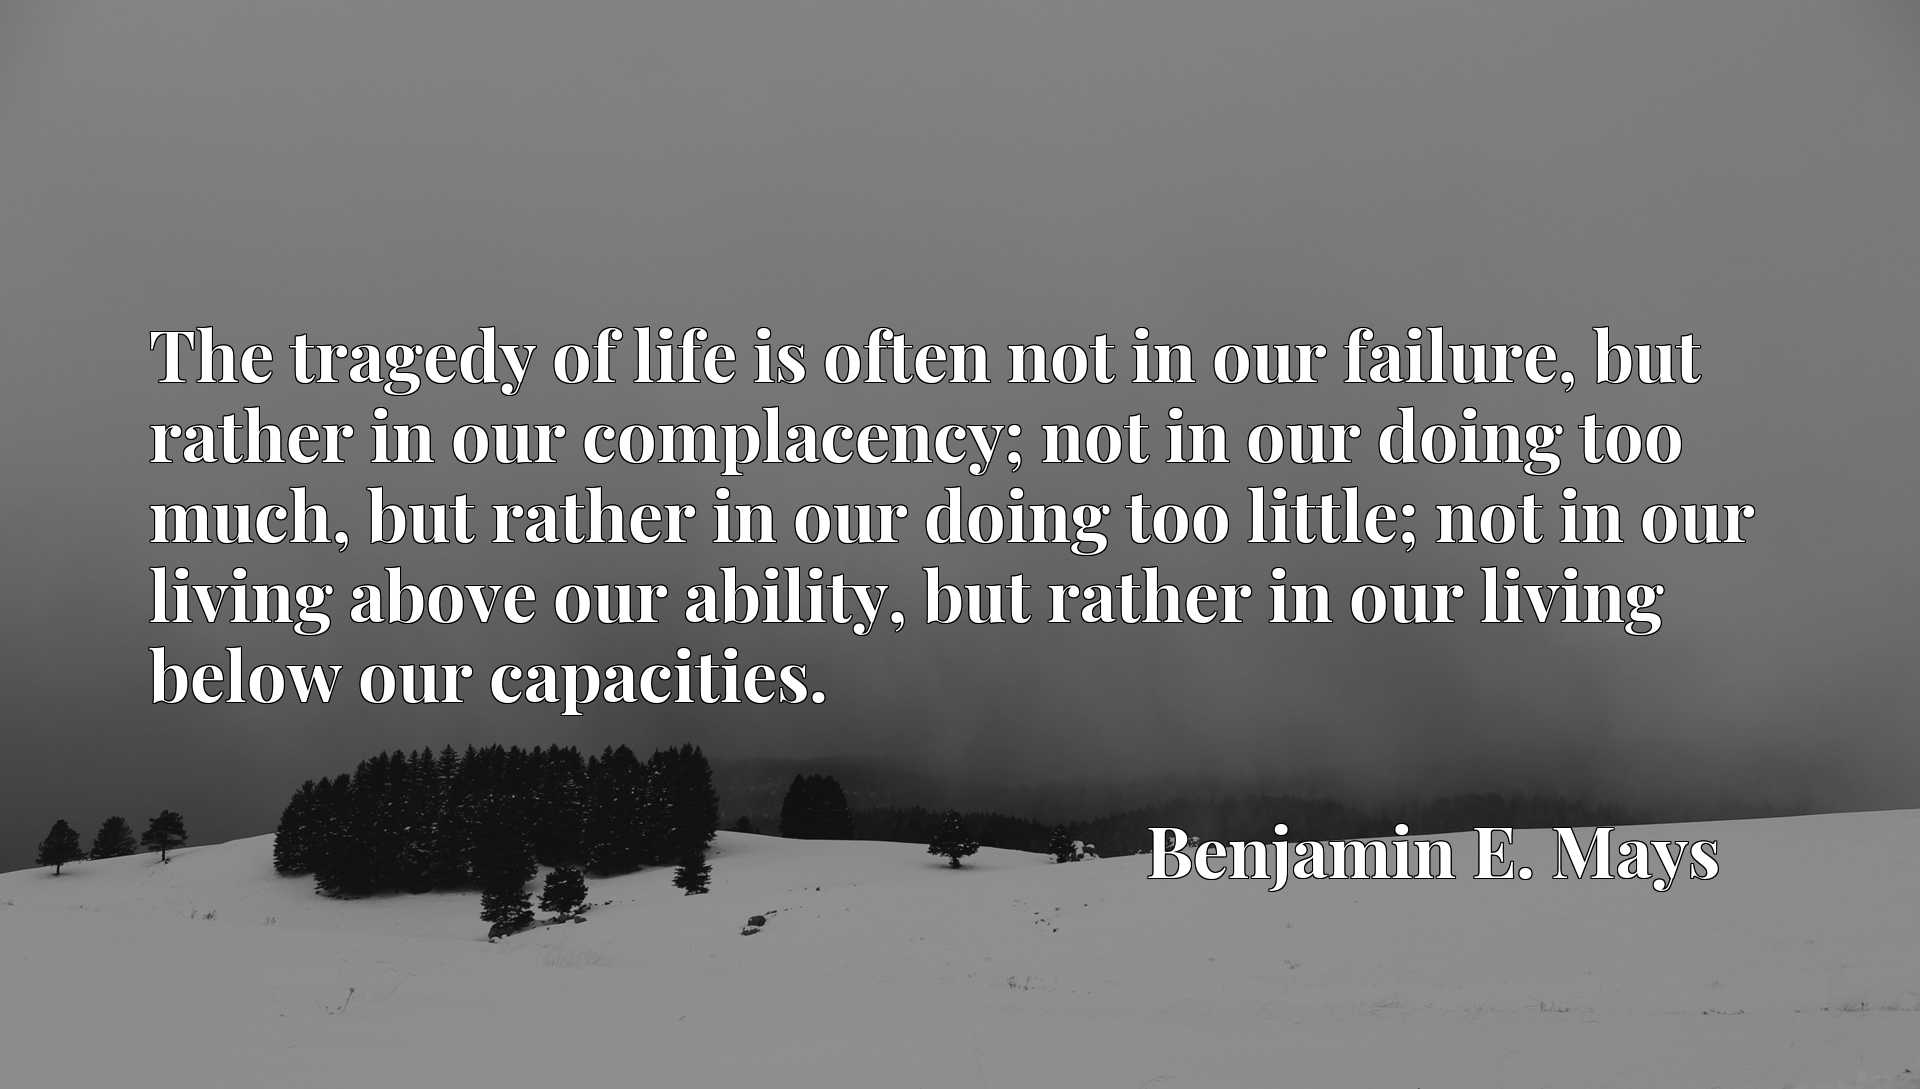 The tragedy of life is often not in our failure, but rather in our complacency; not in our doing too much, but rather in our doing too little; not in our living above our ability, but rather in our living below our capacities.